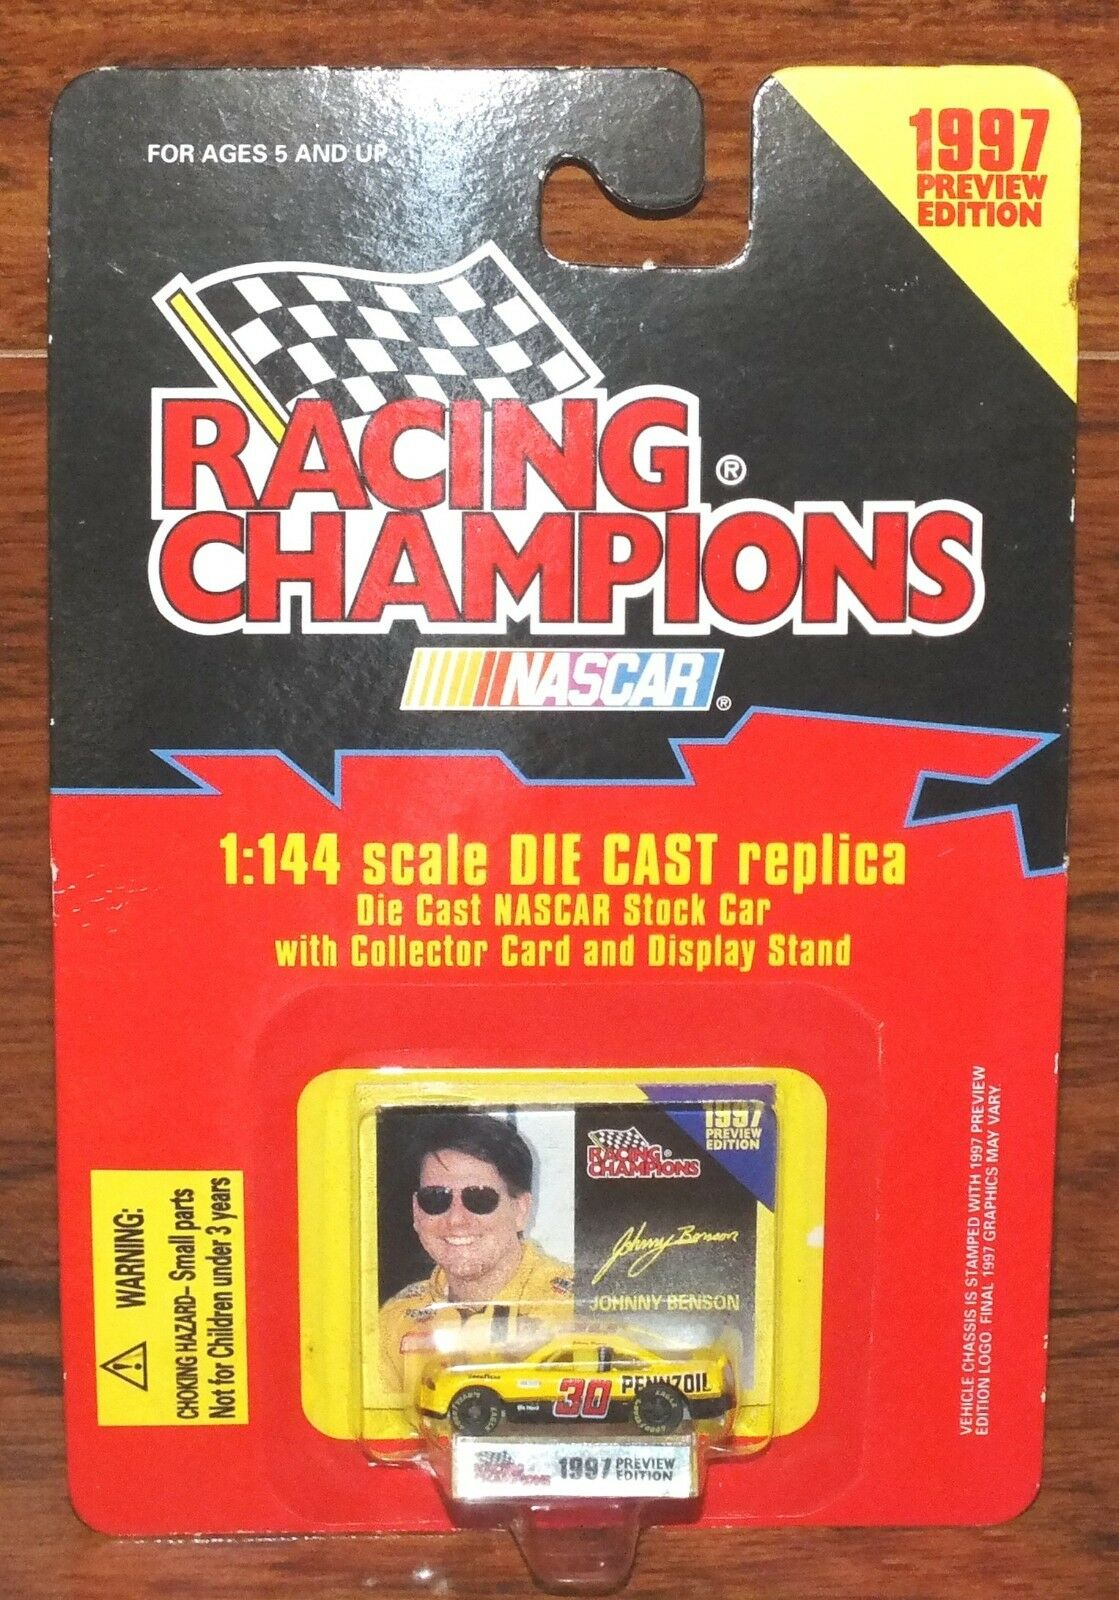 Nascar Racing Champions 1997 Preview Edition 1 144 Johnny Benson Diecast Car NEW